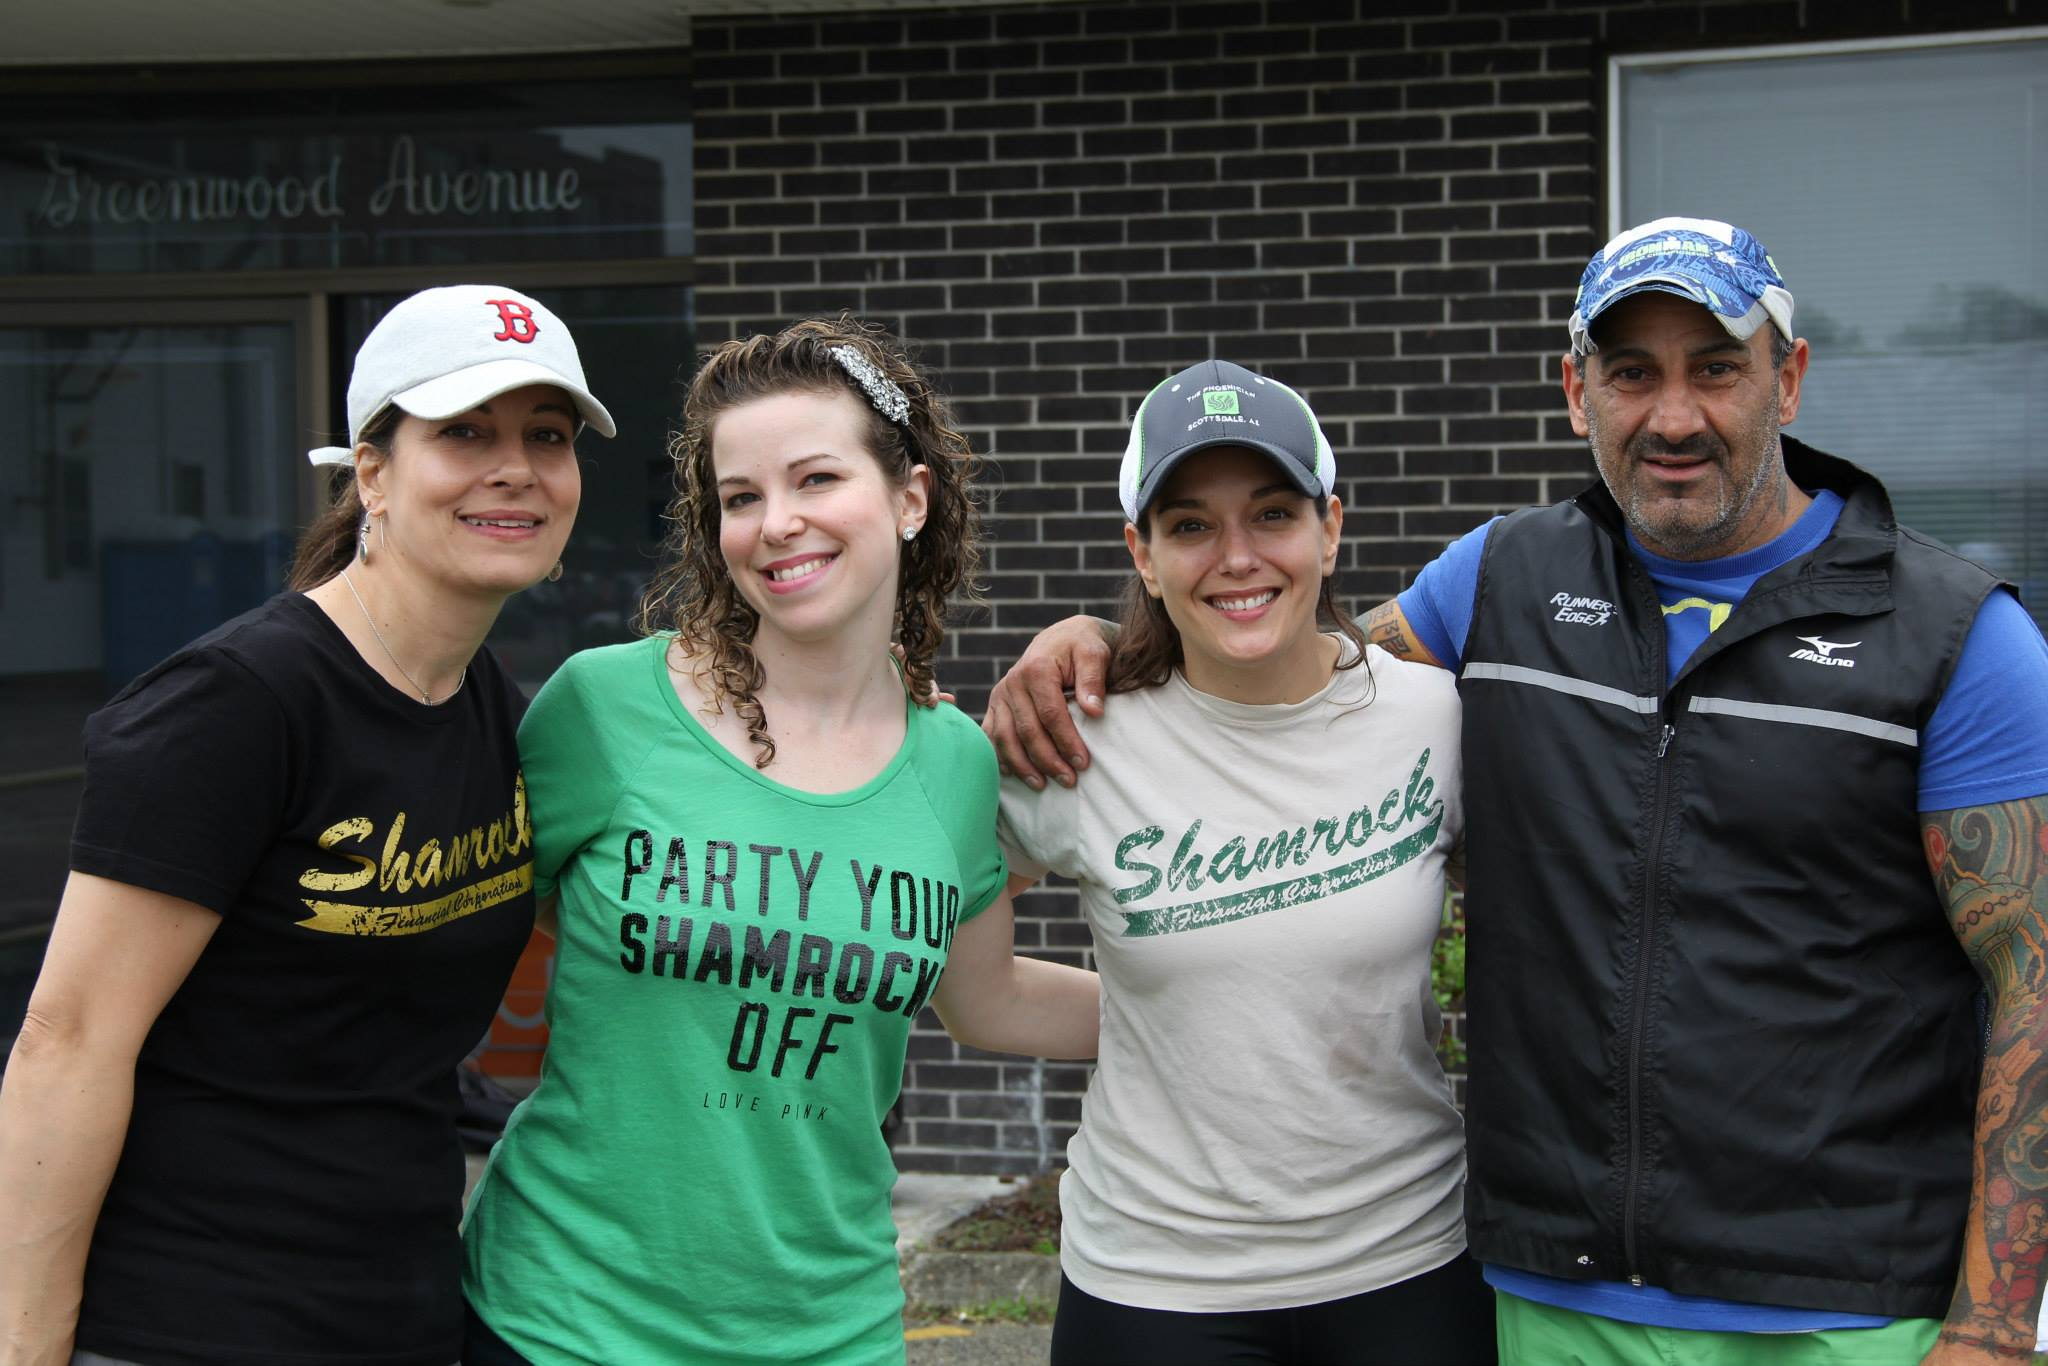 Over 100 runners came out to support the first annual Shamrock Charity 5K.